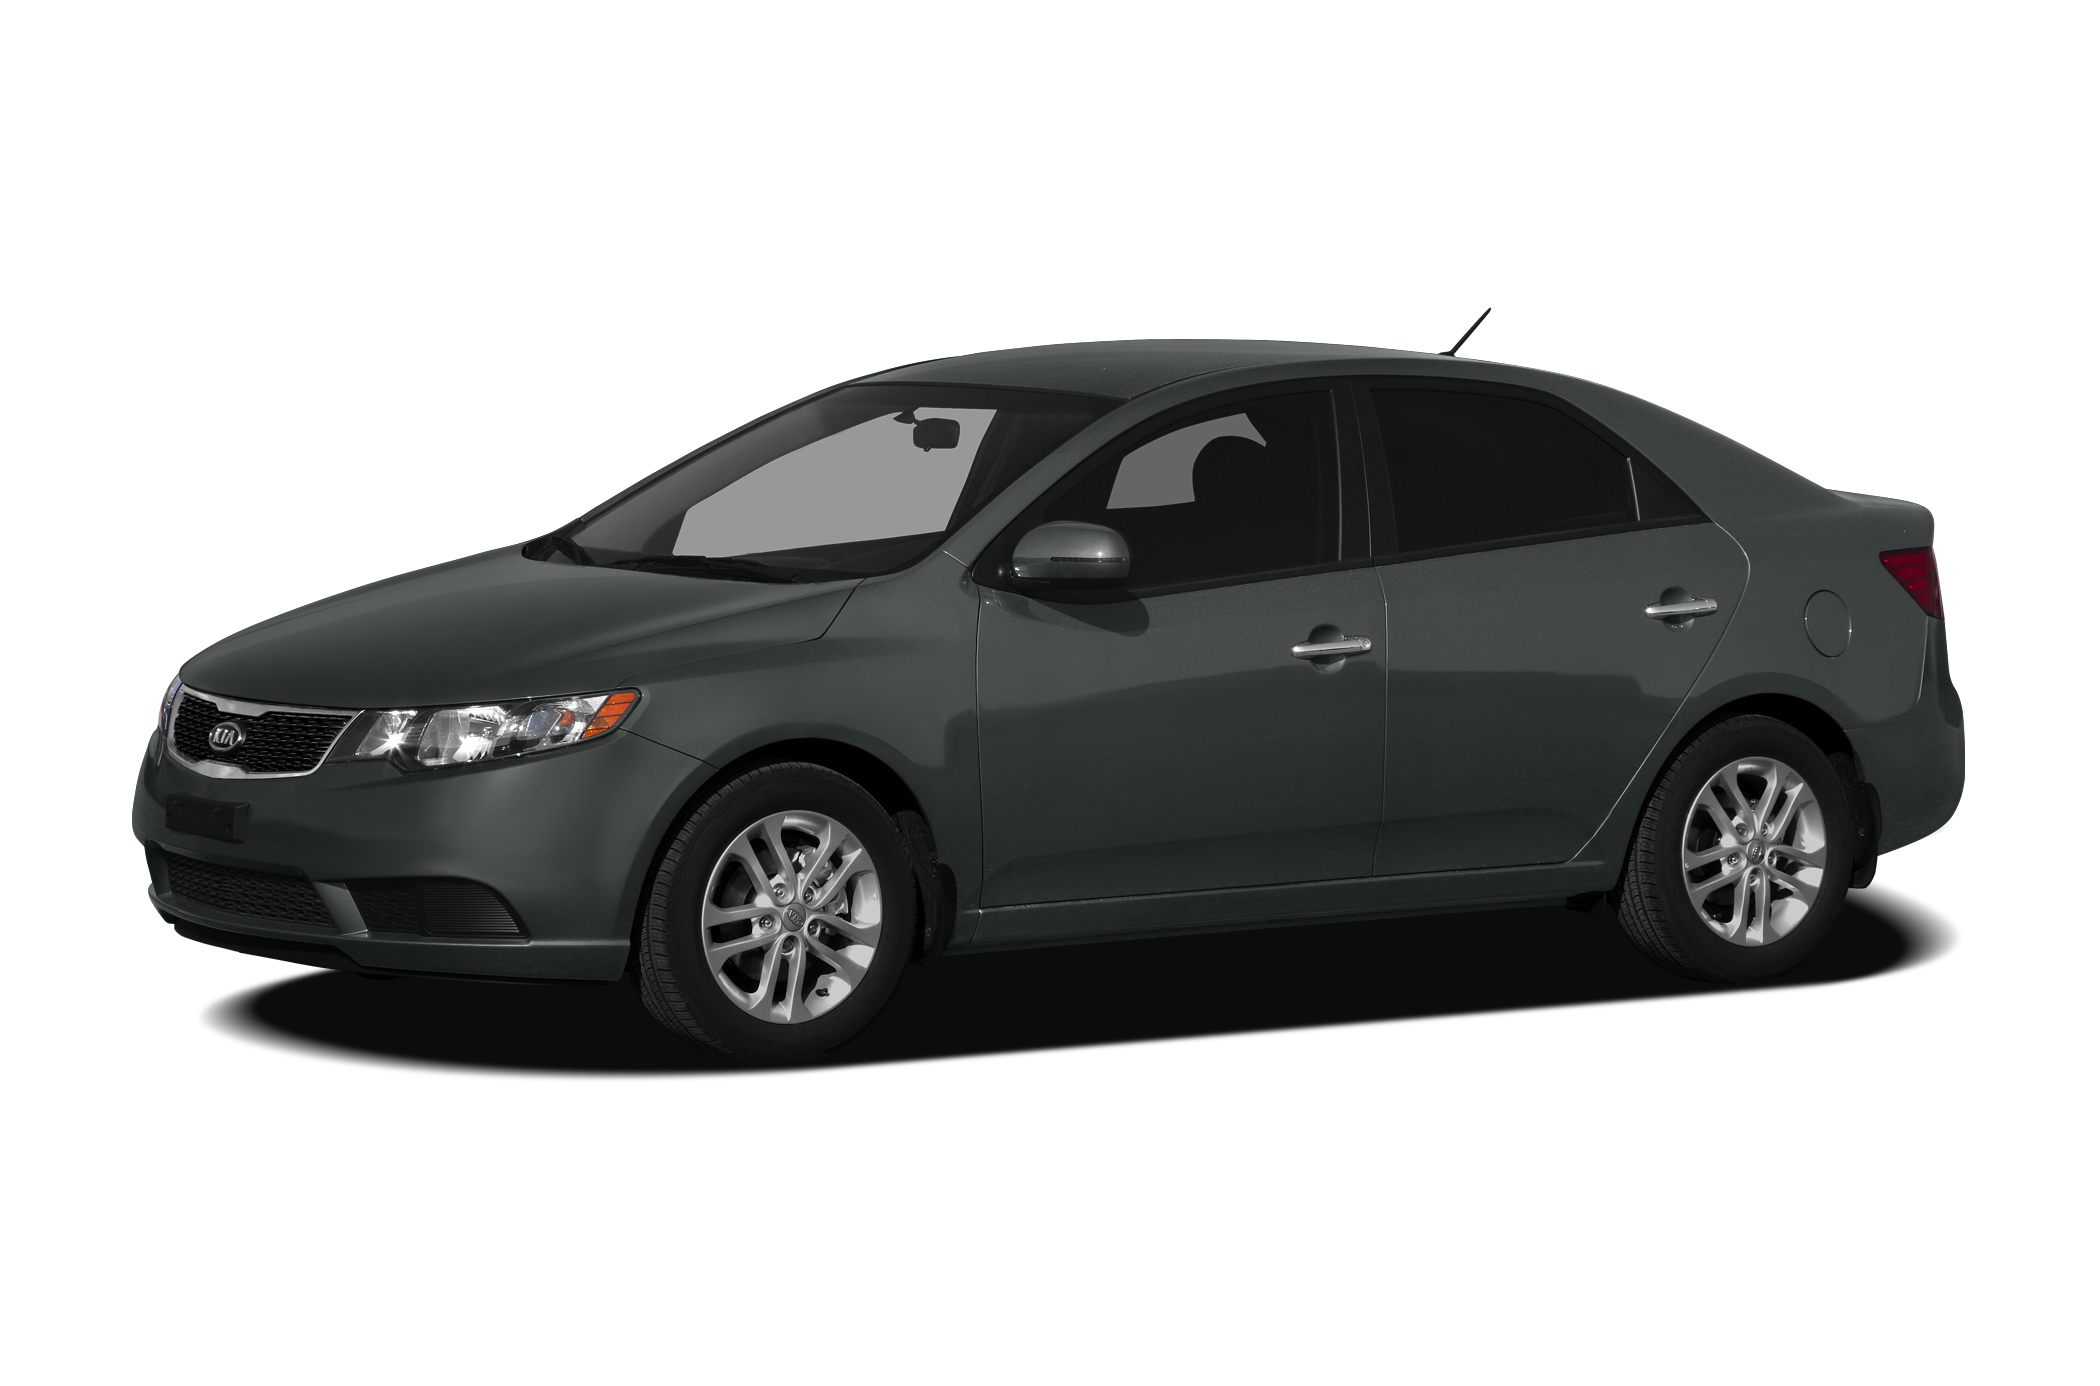 2011 Kia Forte SX Hatchback for sale in Broomall for $0 with 11,380 miles